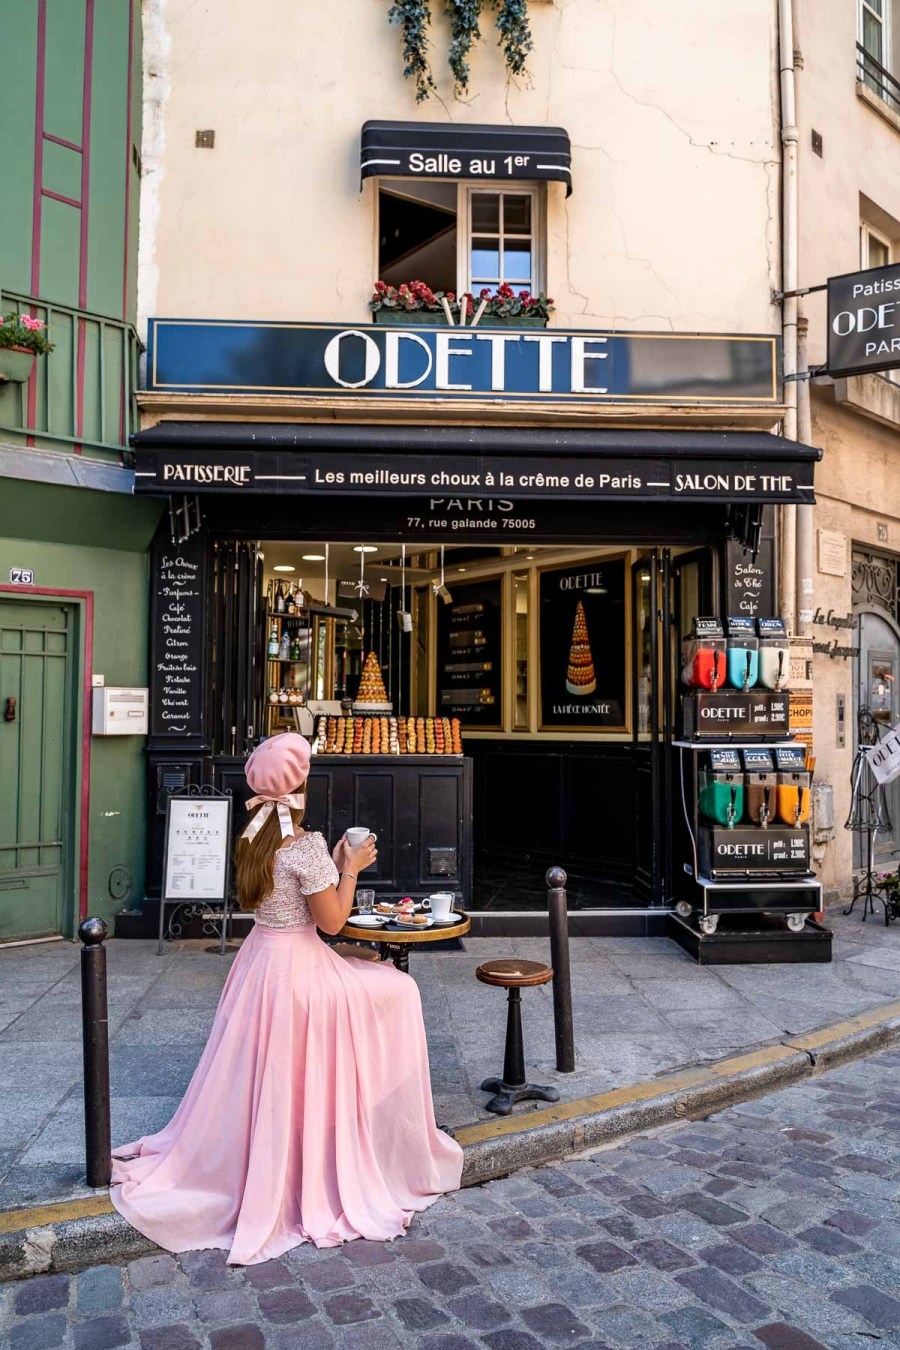 Girl in a pink dress sitting in front of Odette Paris